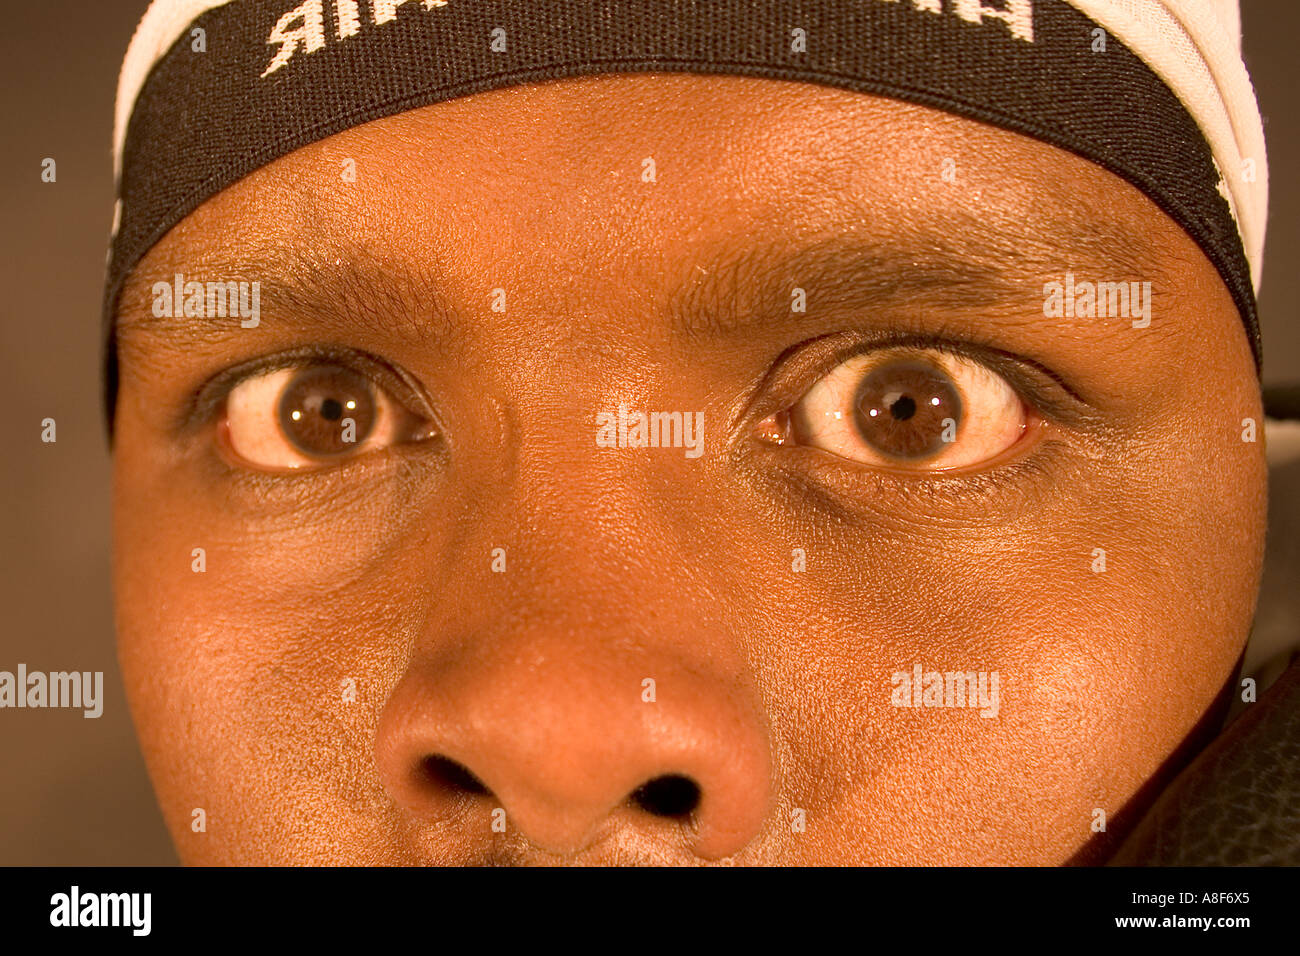 Black man staring into camera - Stock Image